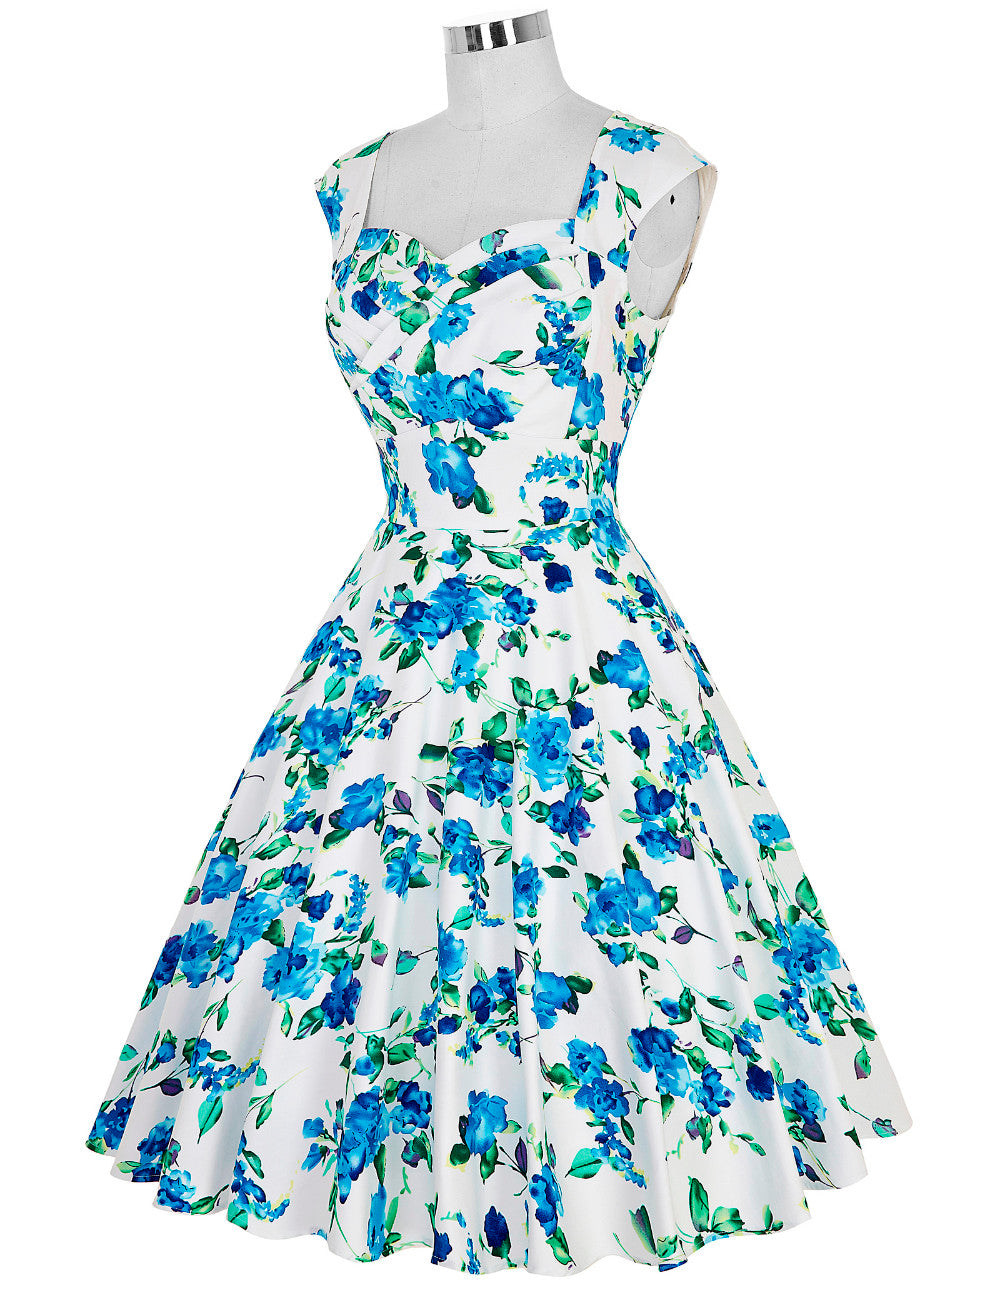 Now on Sale the Belle Dress in White and Blue Rose Print by Ponyboy Vintage Clothing!